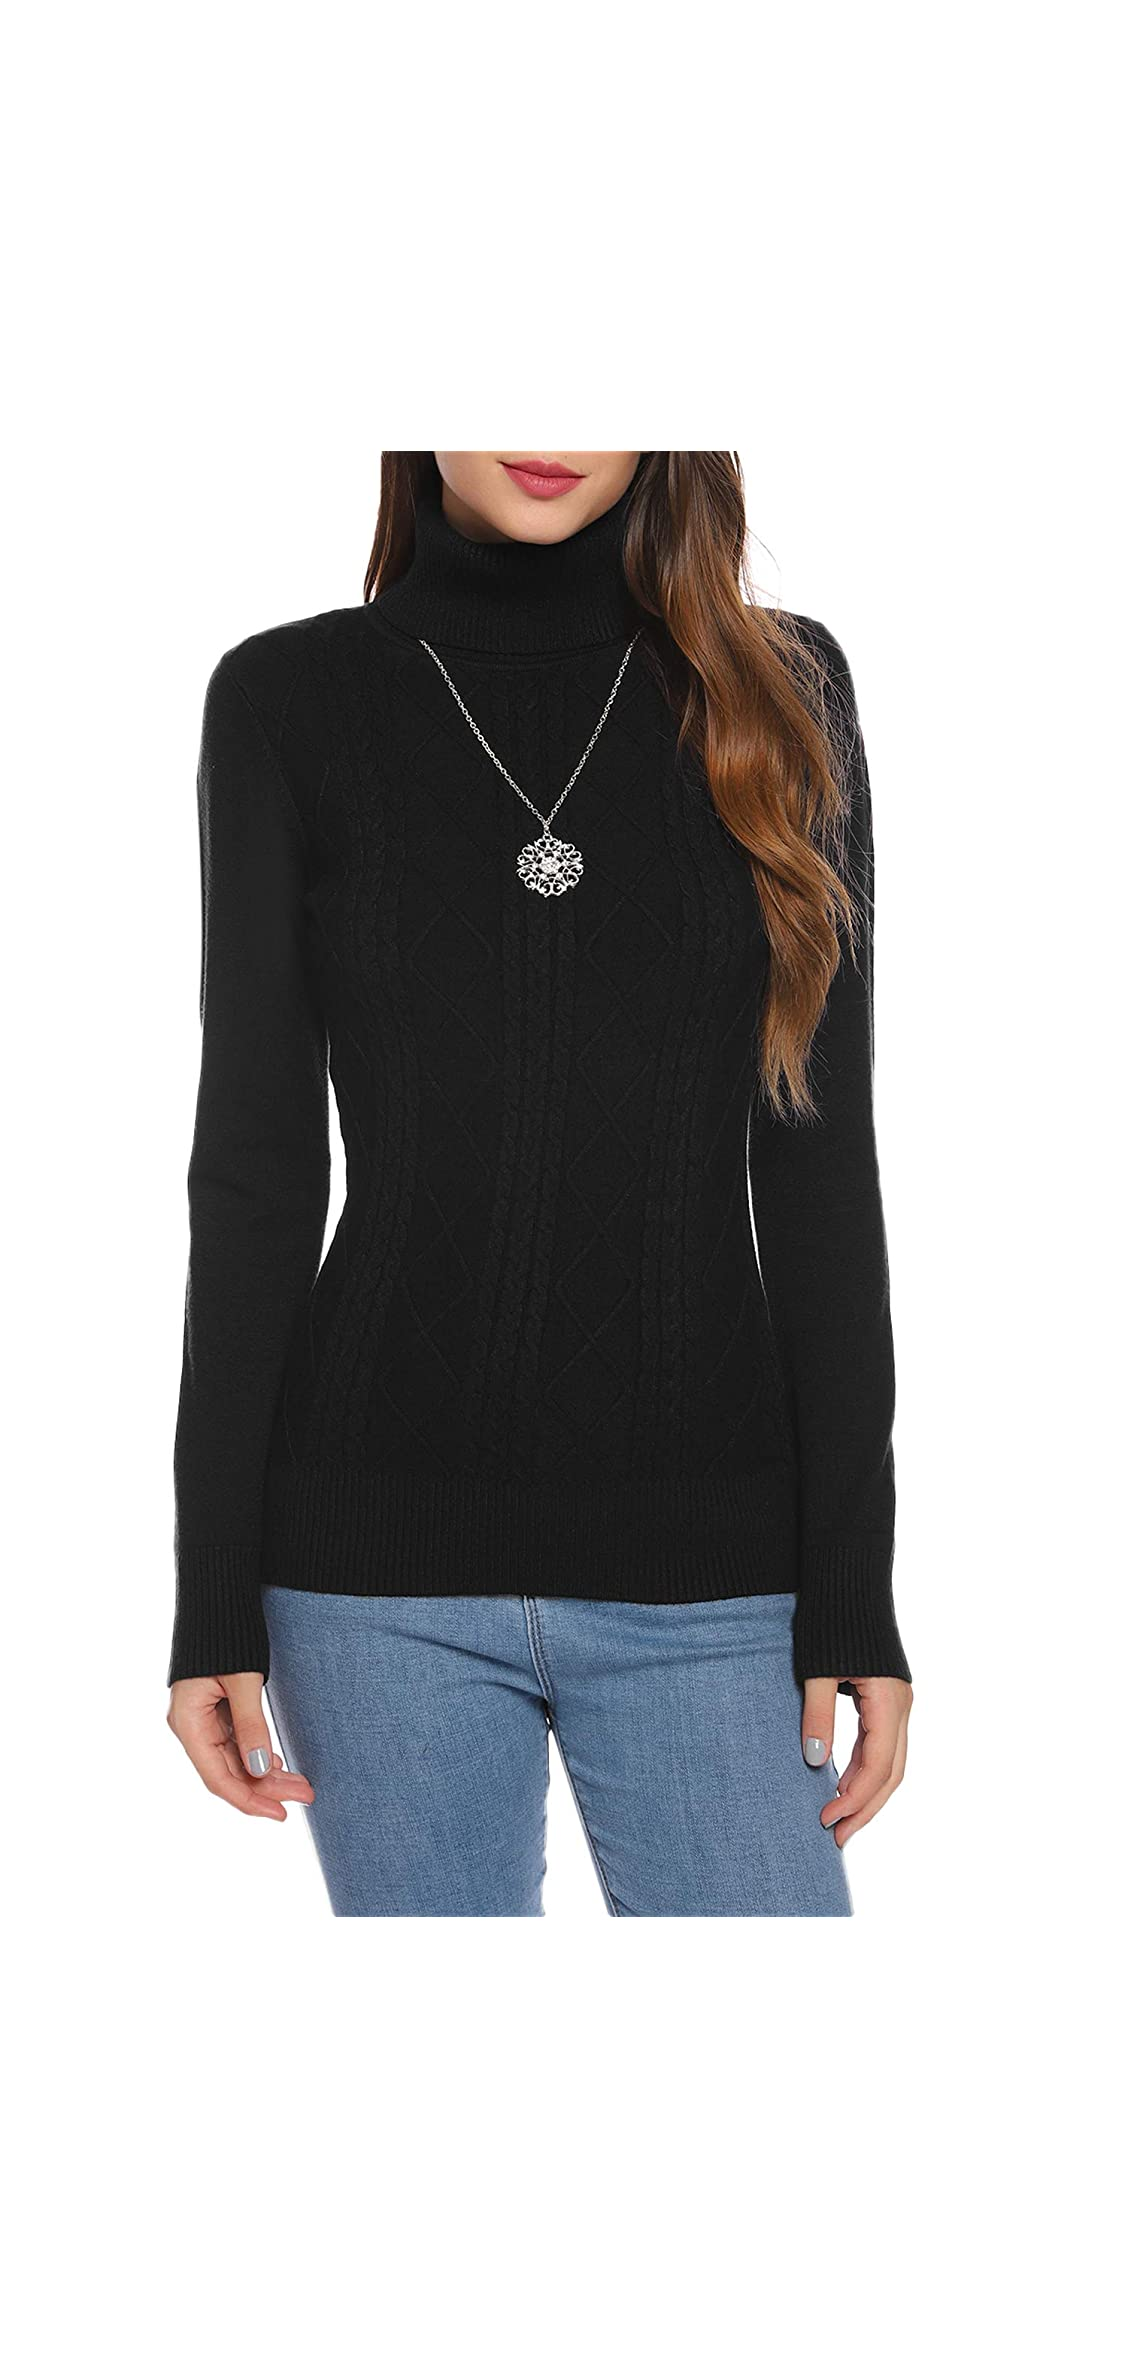 Turtleneck Sweaters For Women Casual Long Sleeve Soft